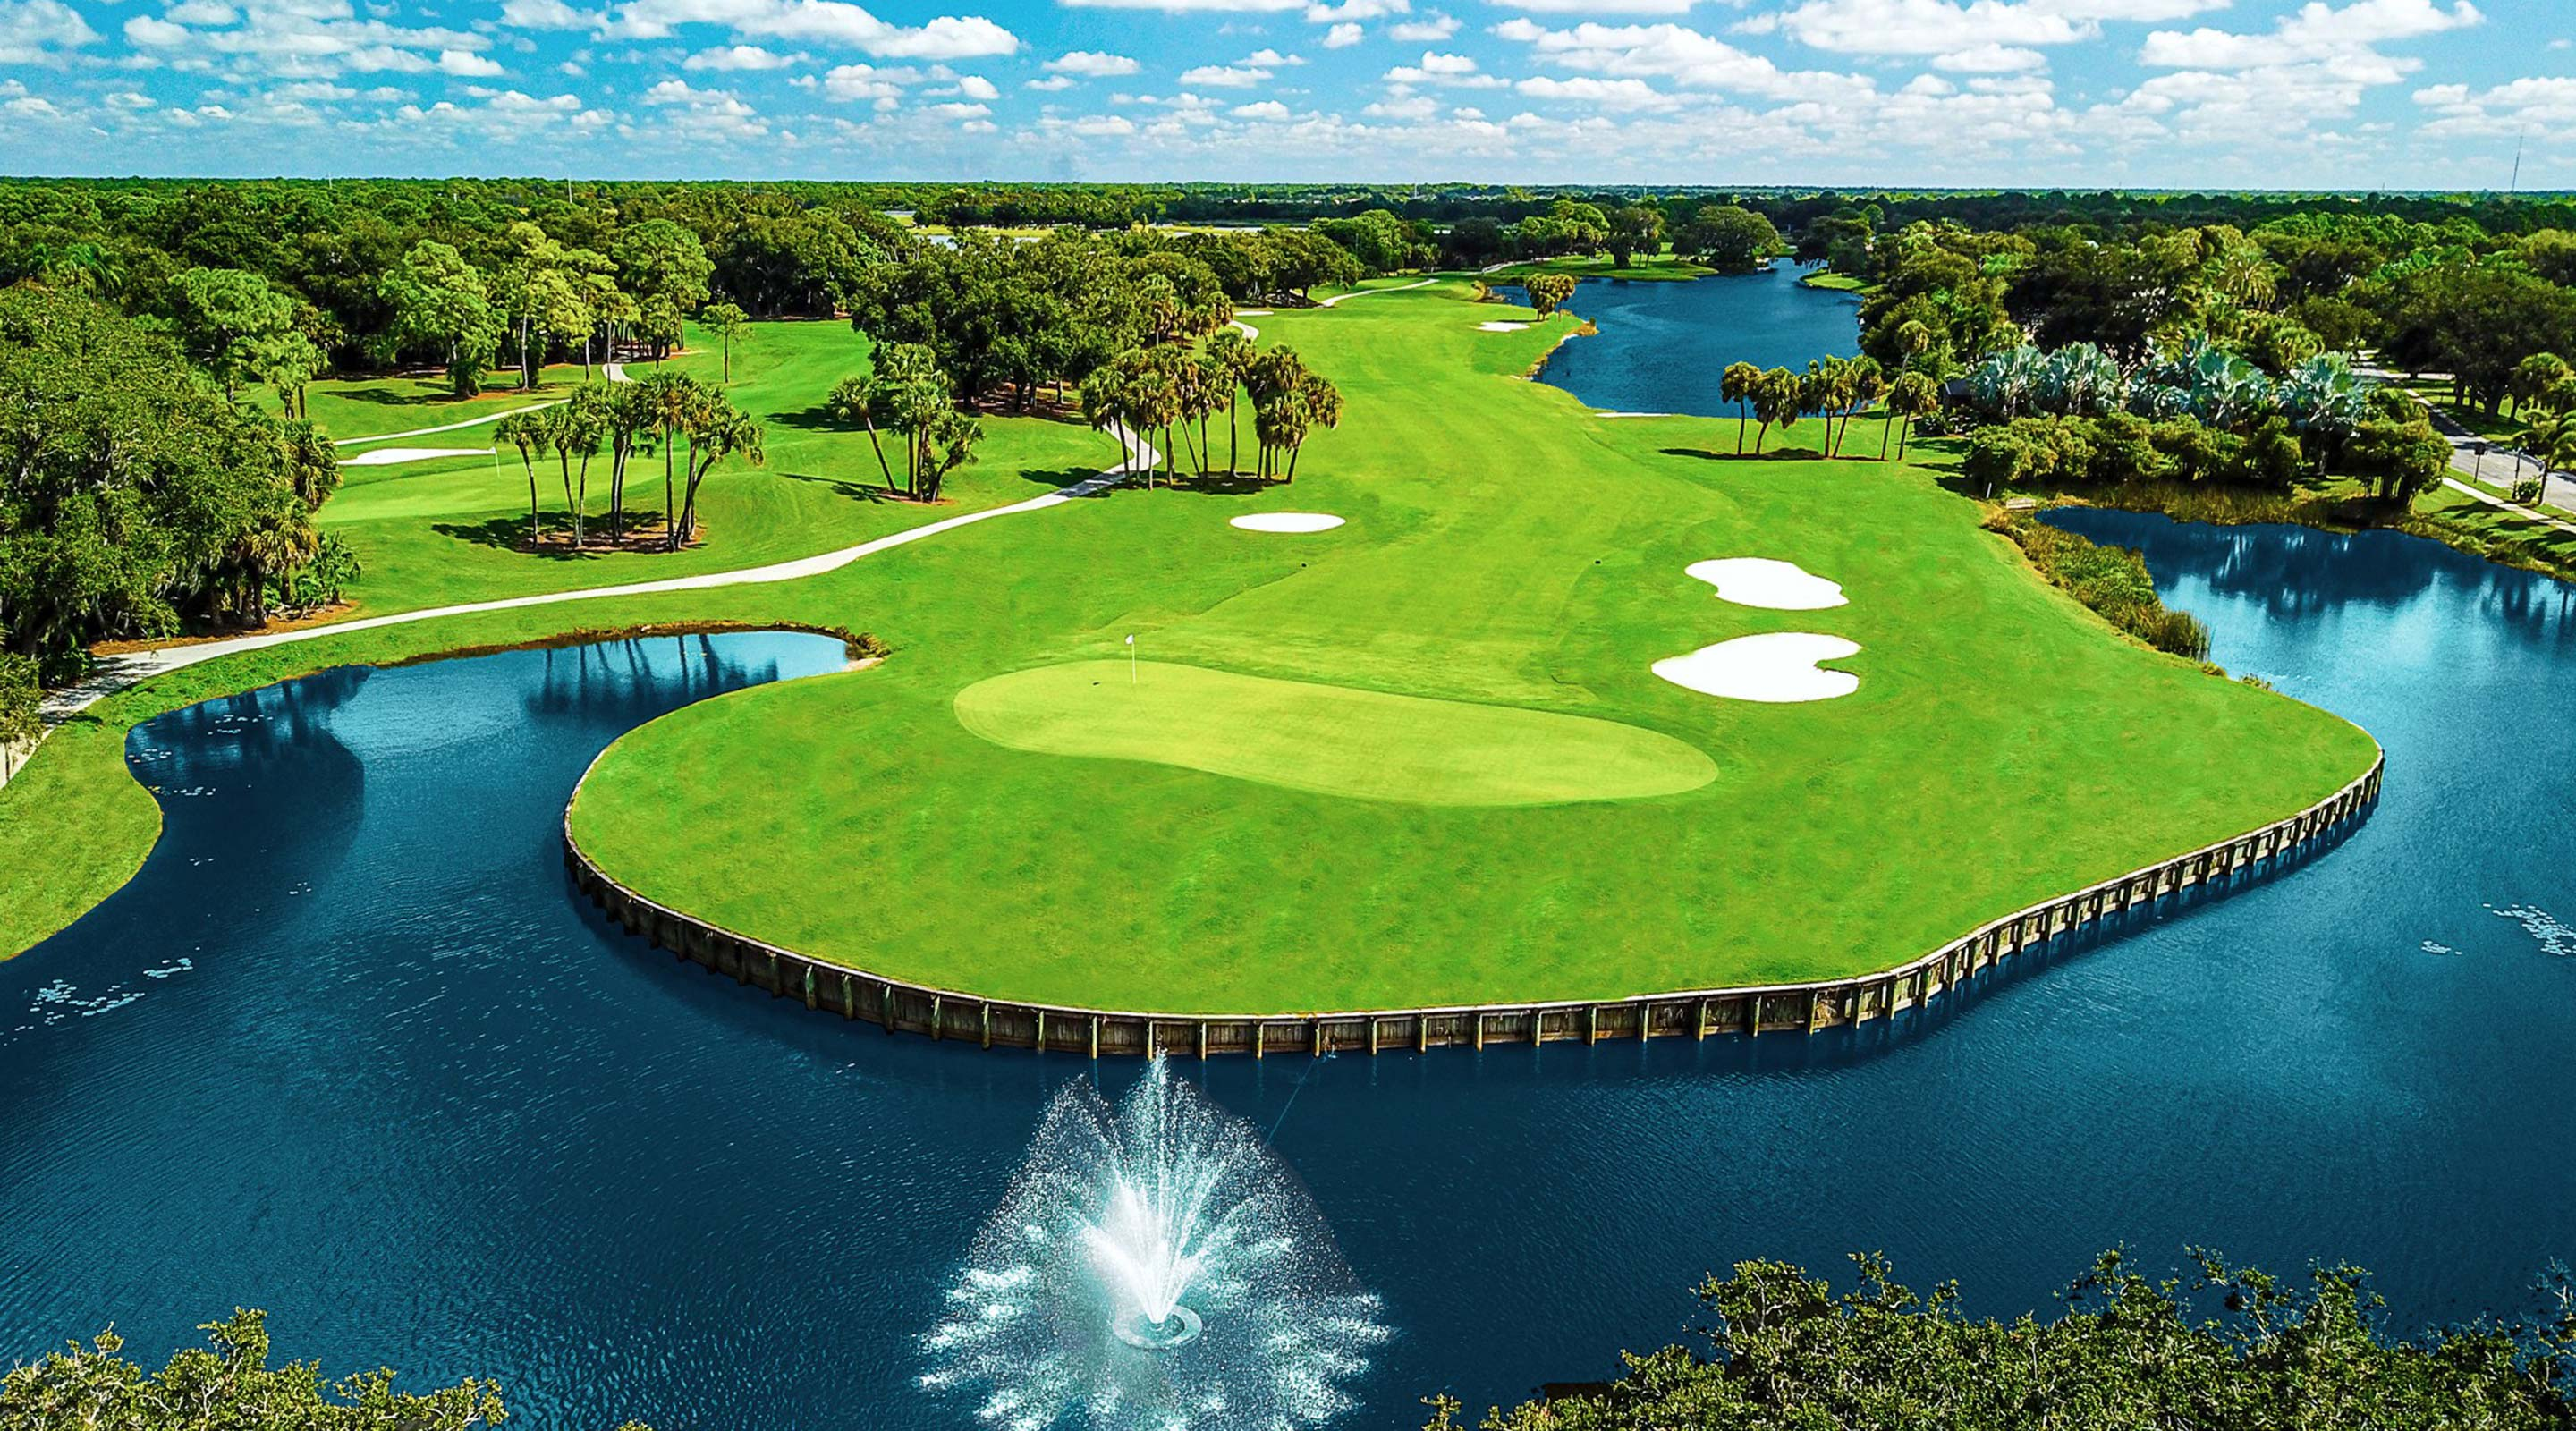 Golf Course & Country Club in Venice FL | The Venice Golf ...